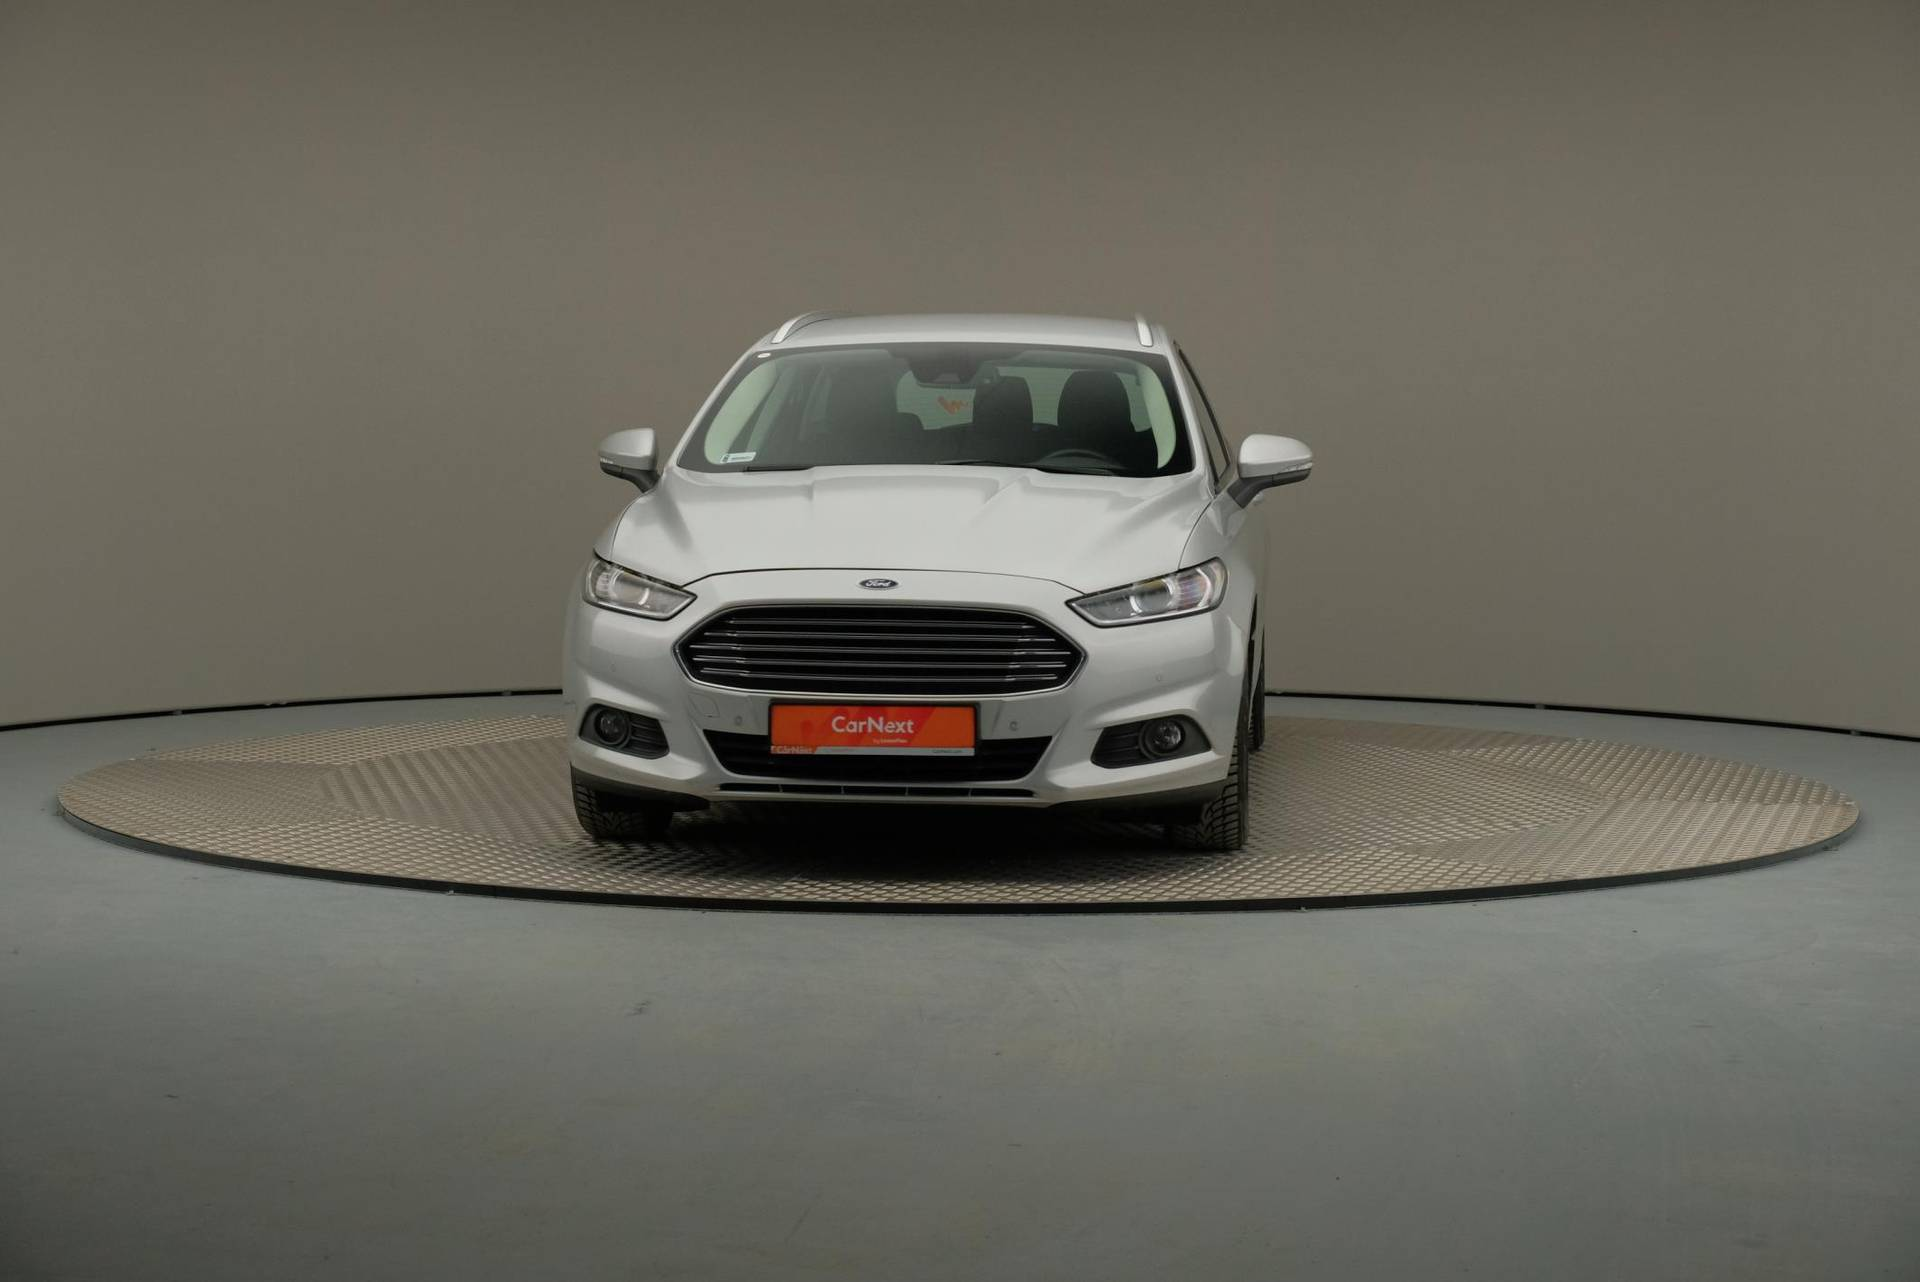 Ford Mondeo Turnier 1.5 Eco Boost Start-Stopp, Trend, 360-image32